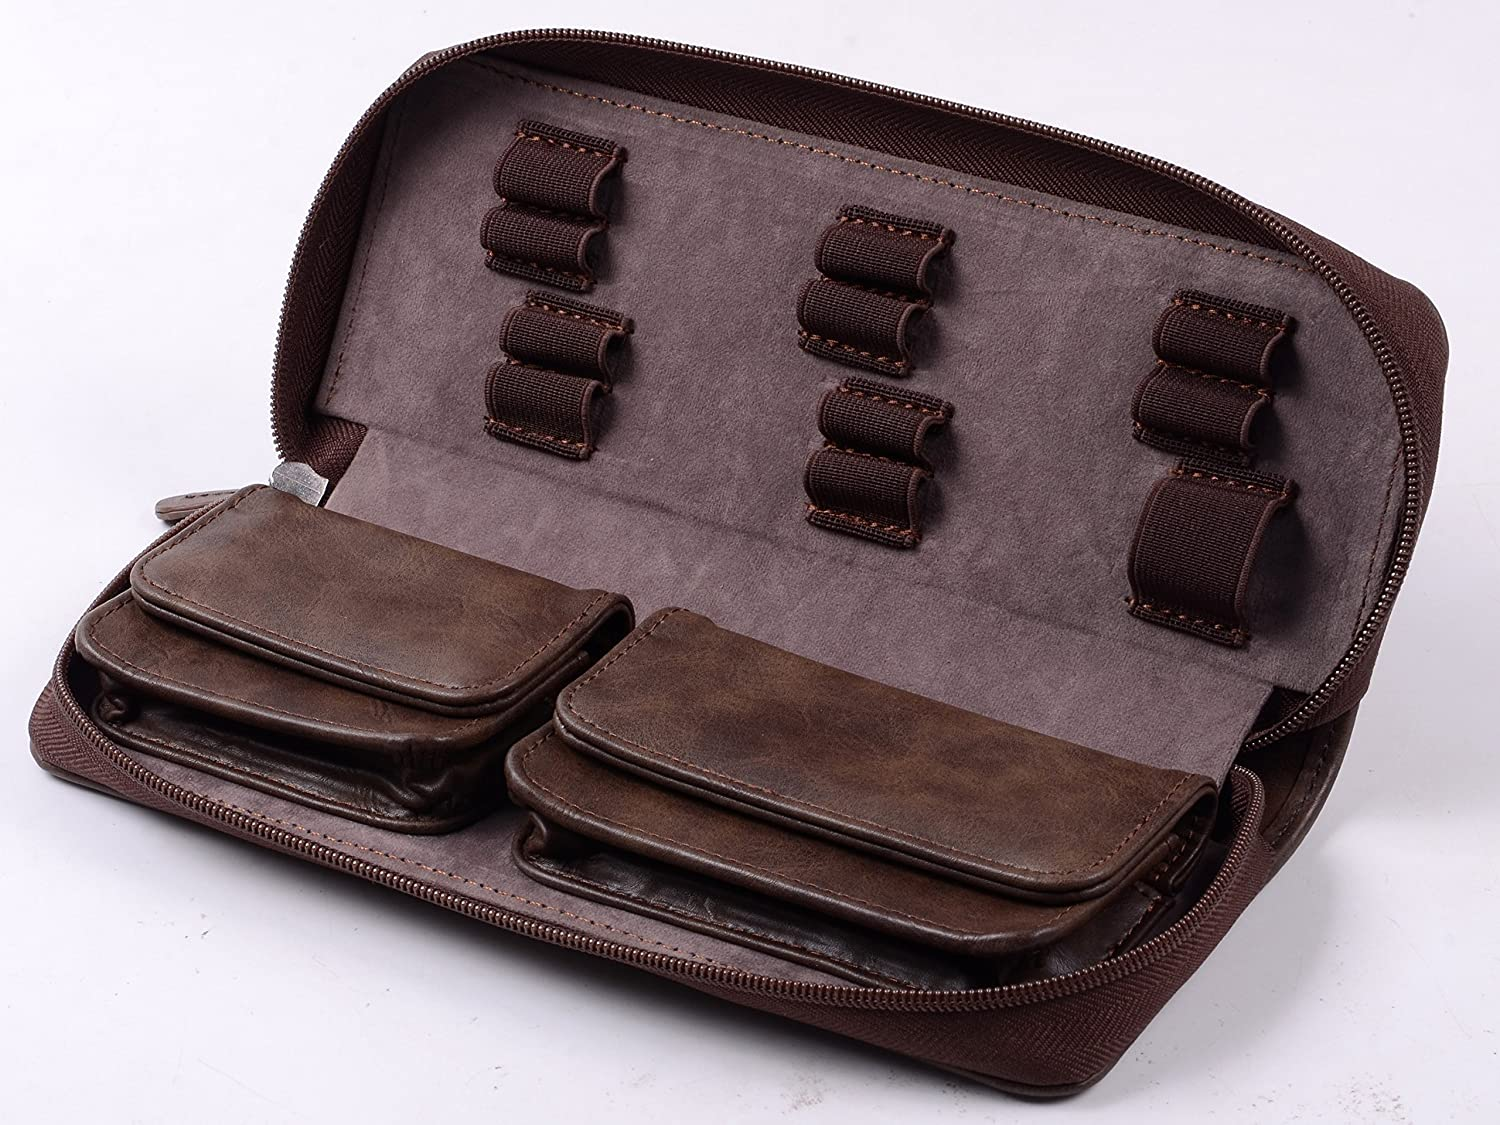 420 and Vape Leather Travel Case - Store Your Batteries Concentrates, Chillums, Toobs, Grinders, and Other 420 Accessories! Also Includes Two Built-in Buttom snap Pockets Tokebox